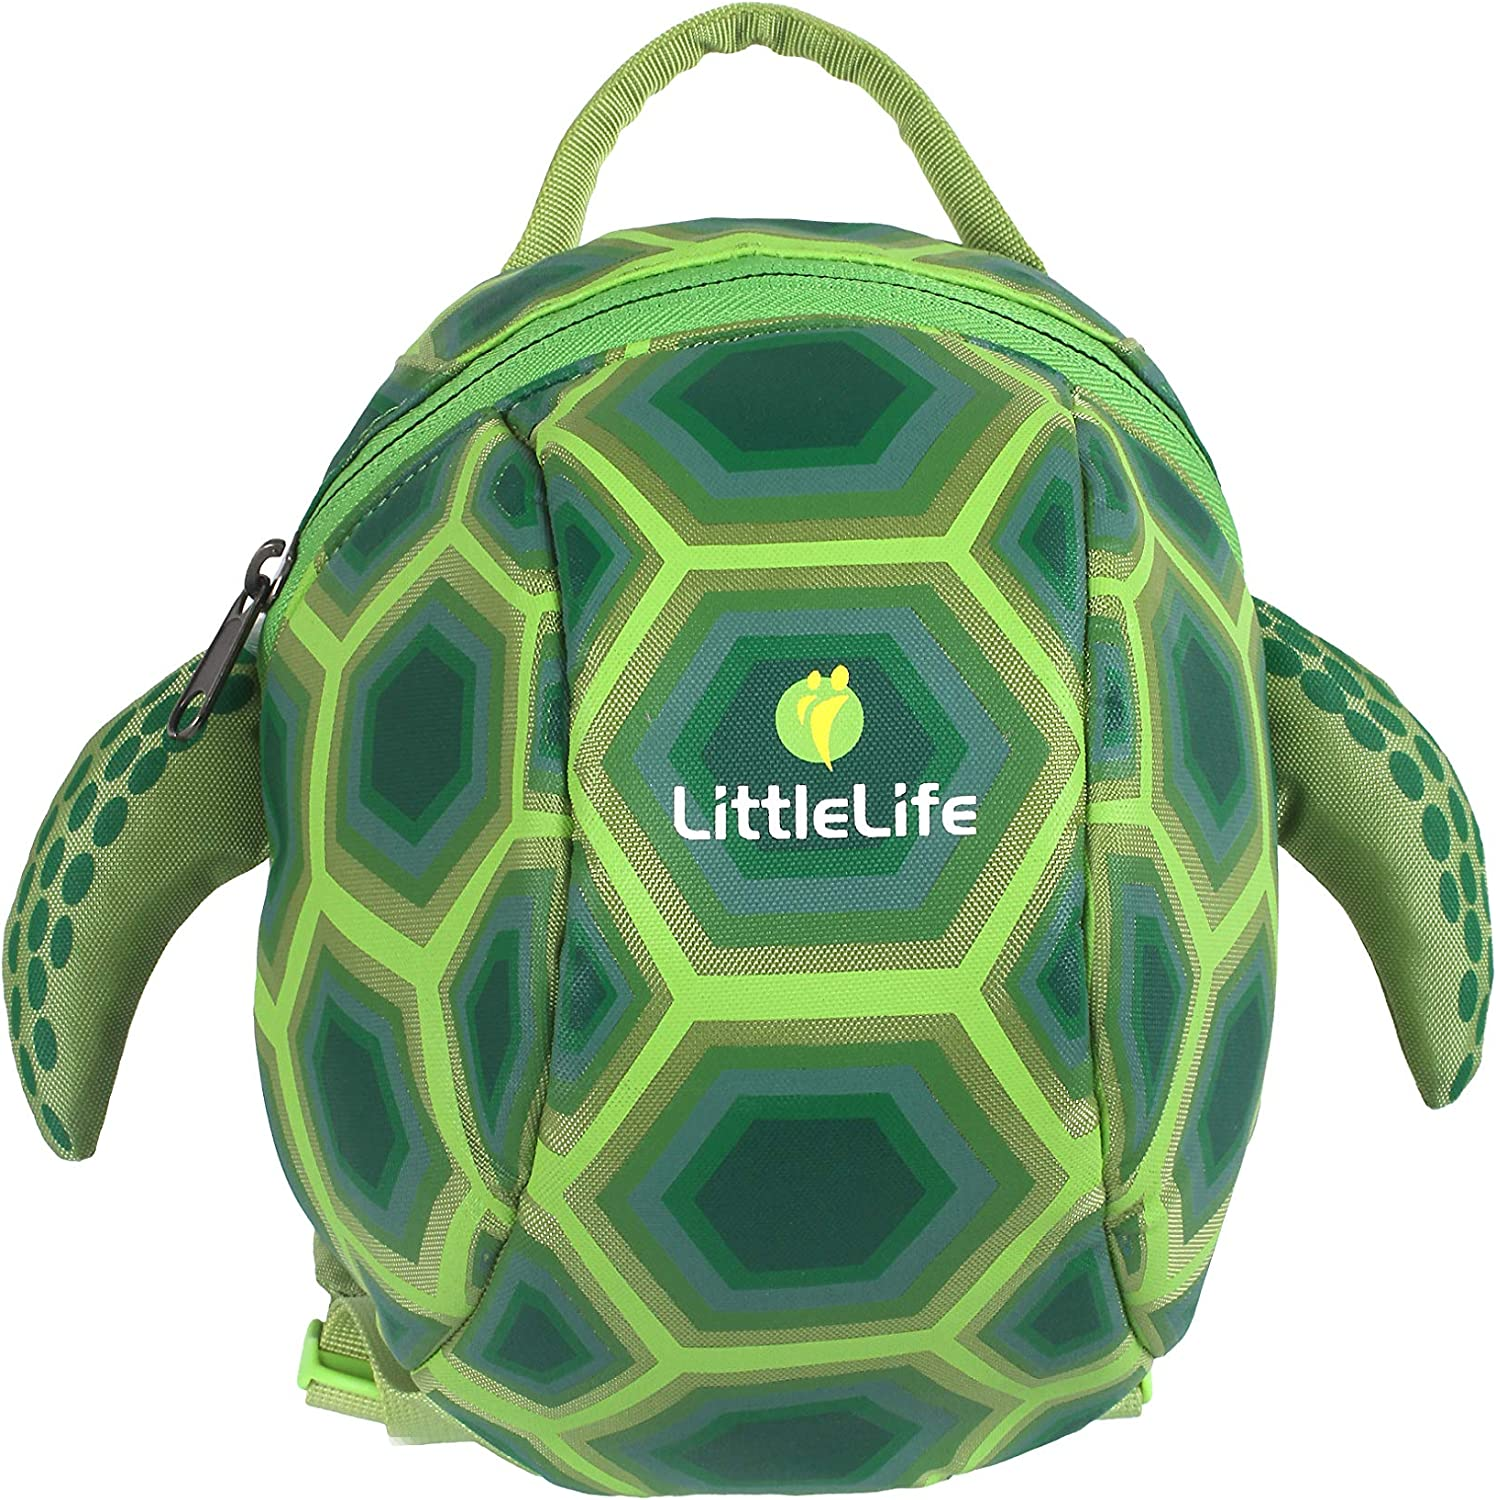 LittleLife Unisex Child Toddler Backpack Turtle, Timmy The Turtle, Toddler 1-3 Years UK